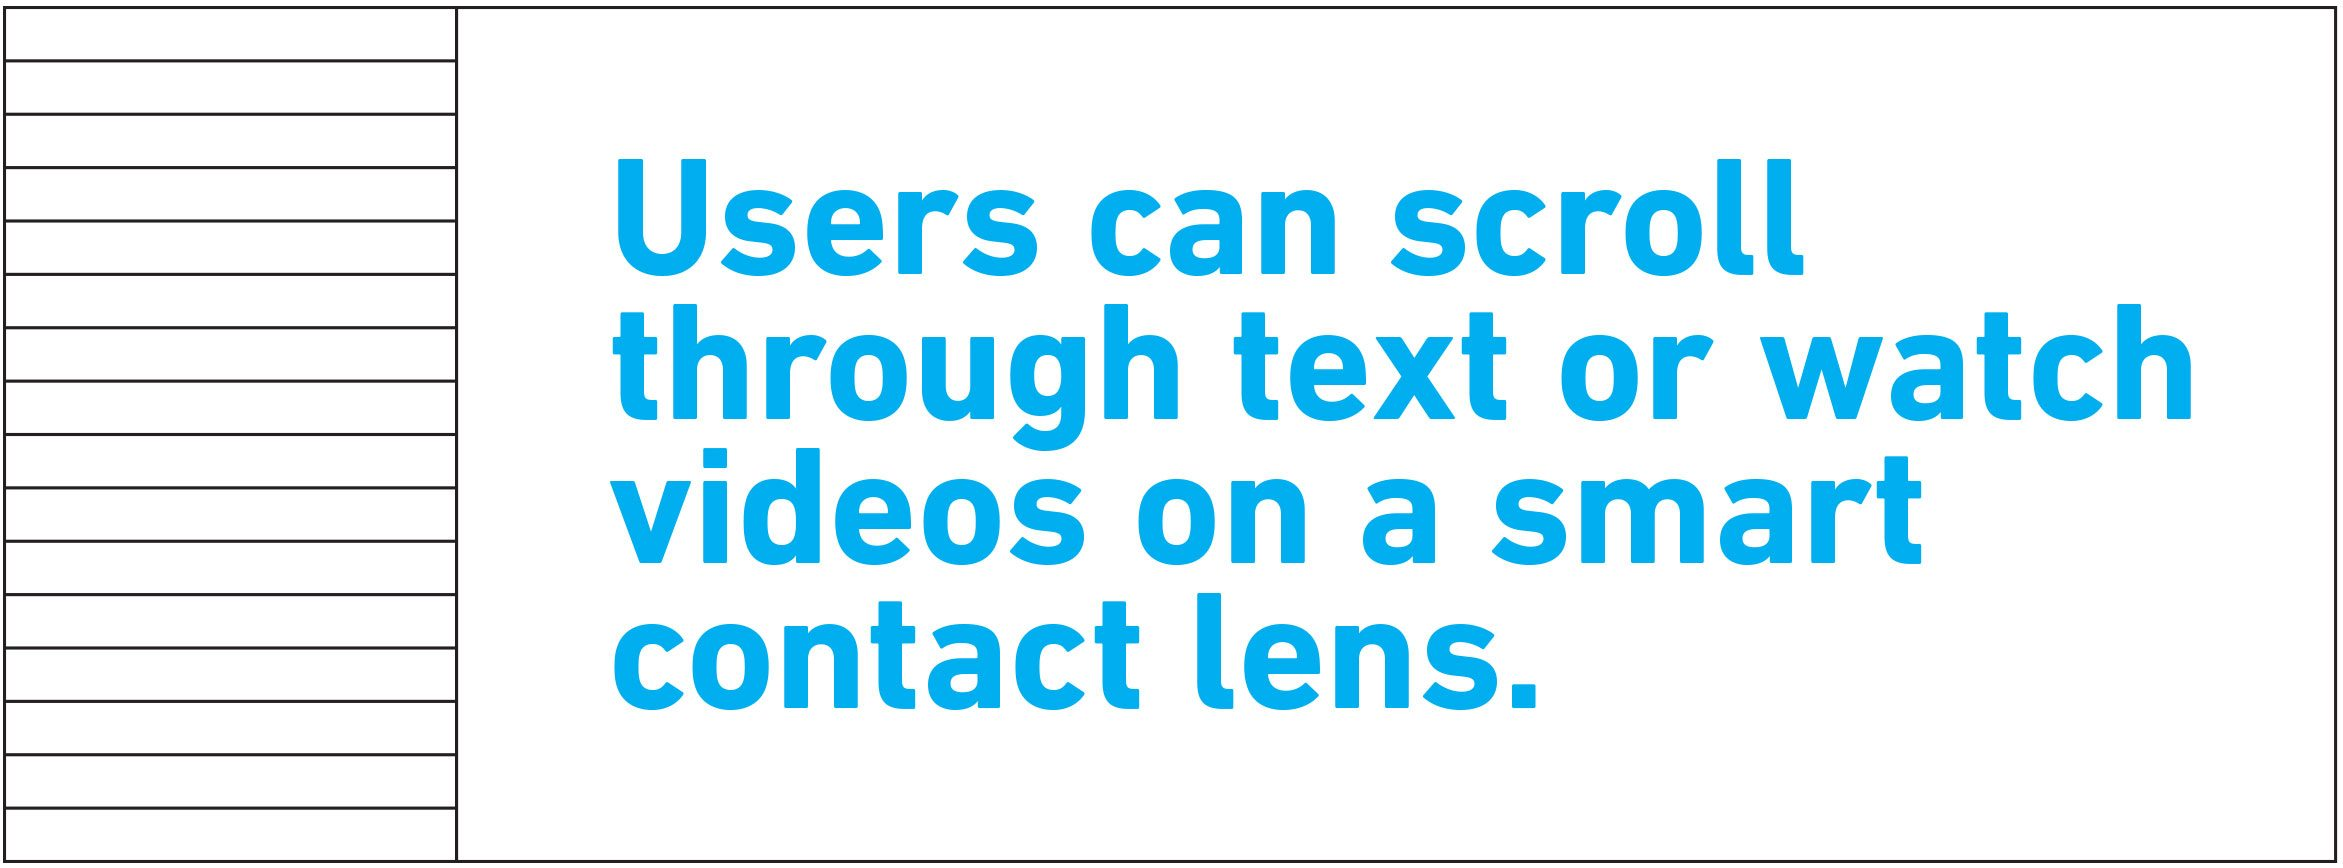 pull quote text. Users can scroll through text or watch videos on a smart contact lens.